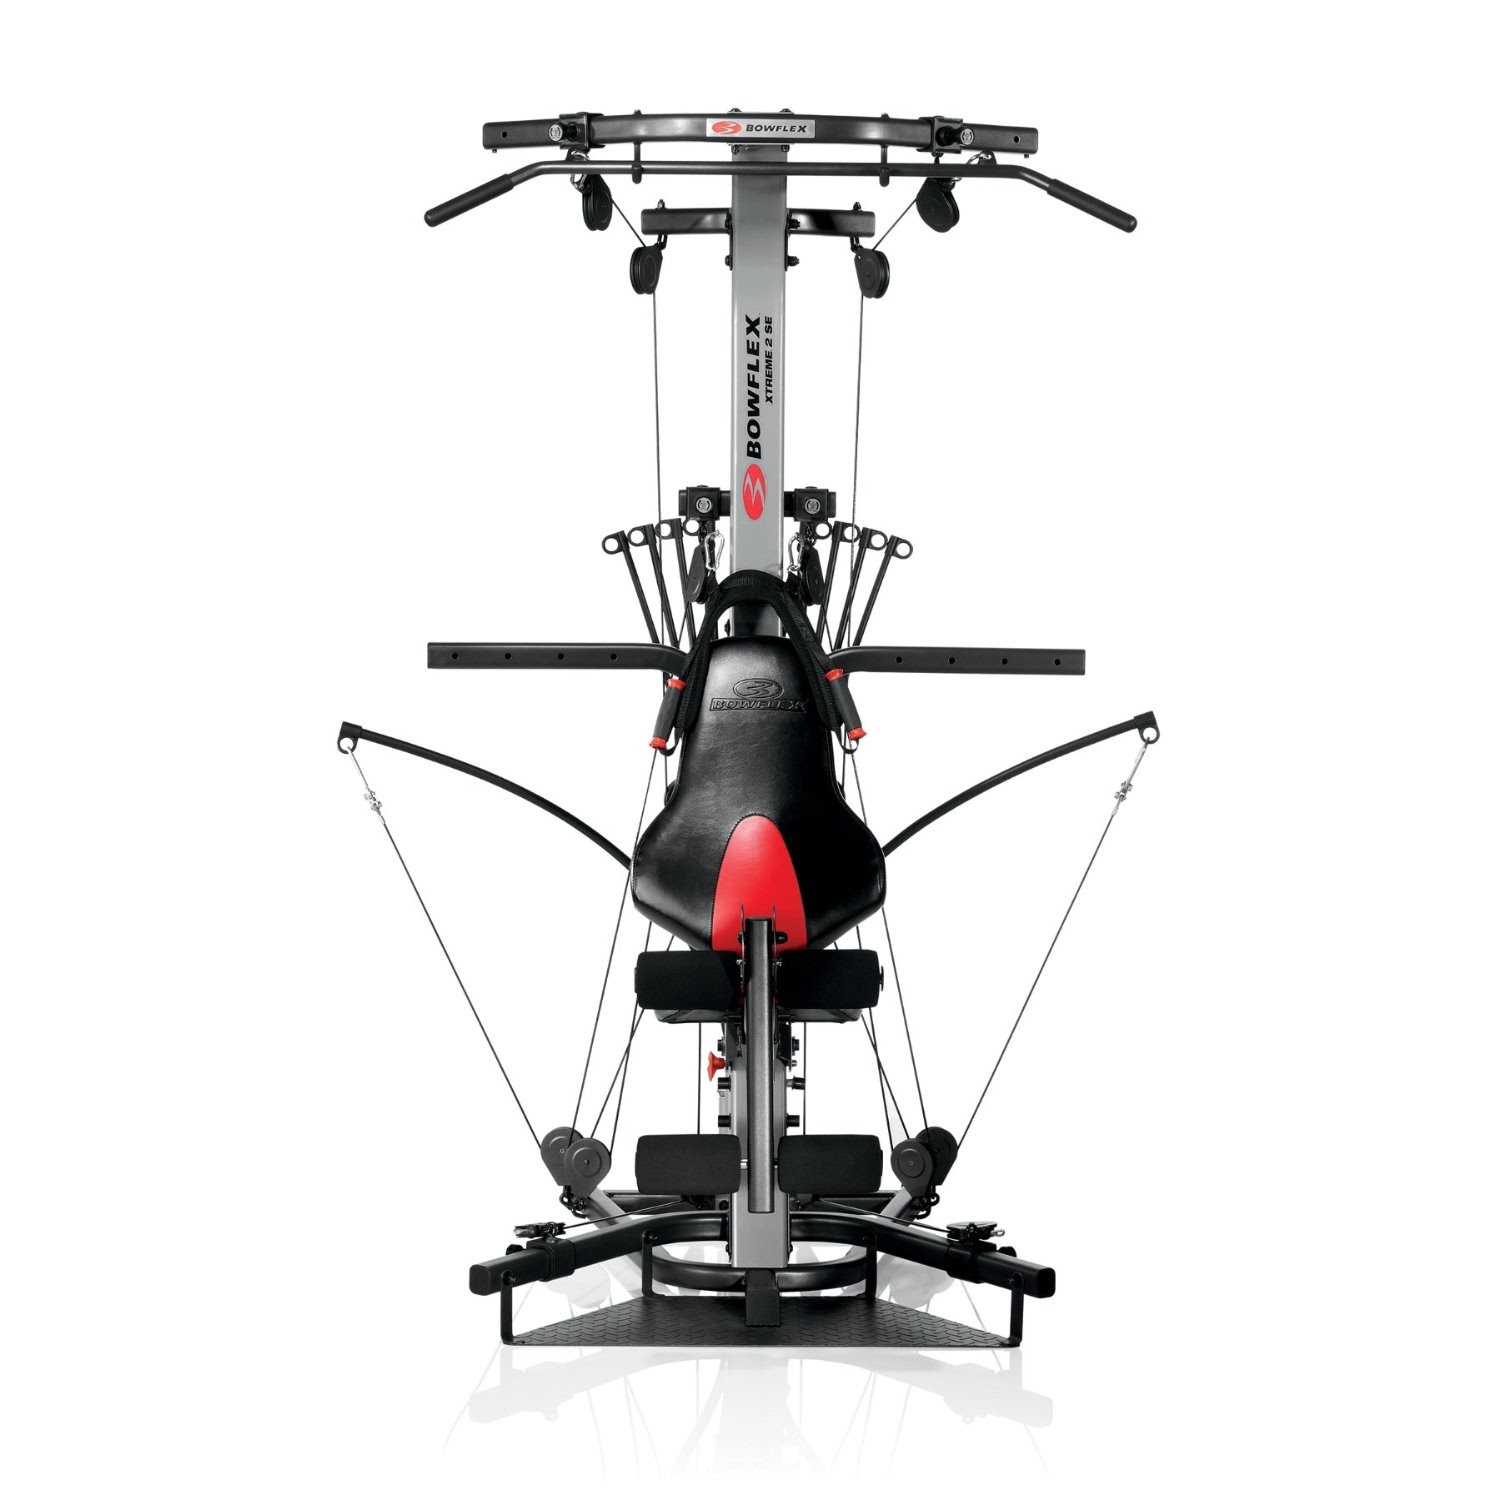 Health And Fitness Den: Bowflex Xtreme 2 SE Home Gym, Review